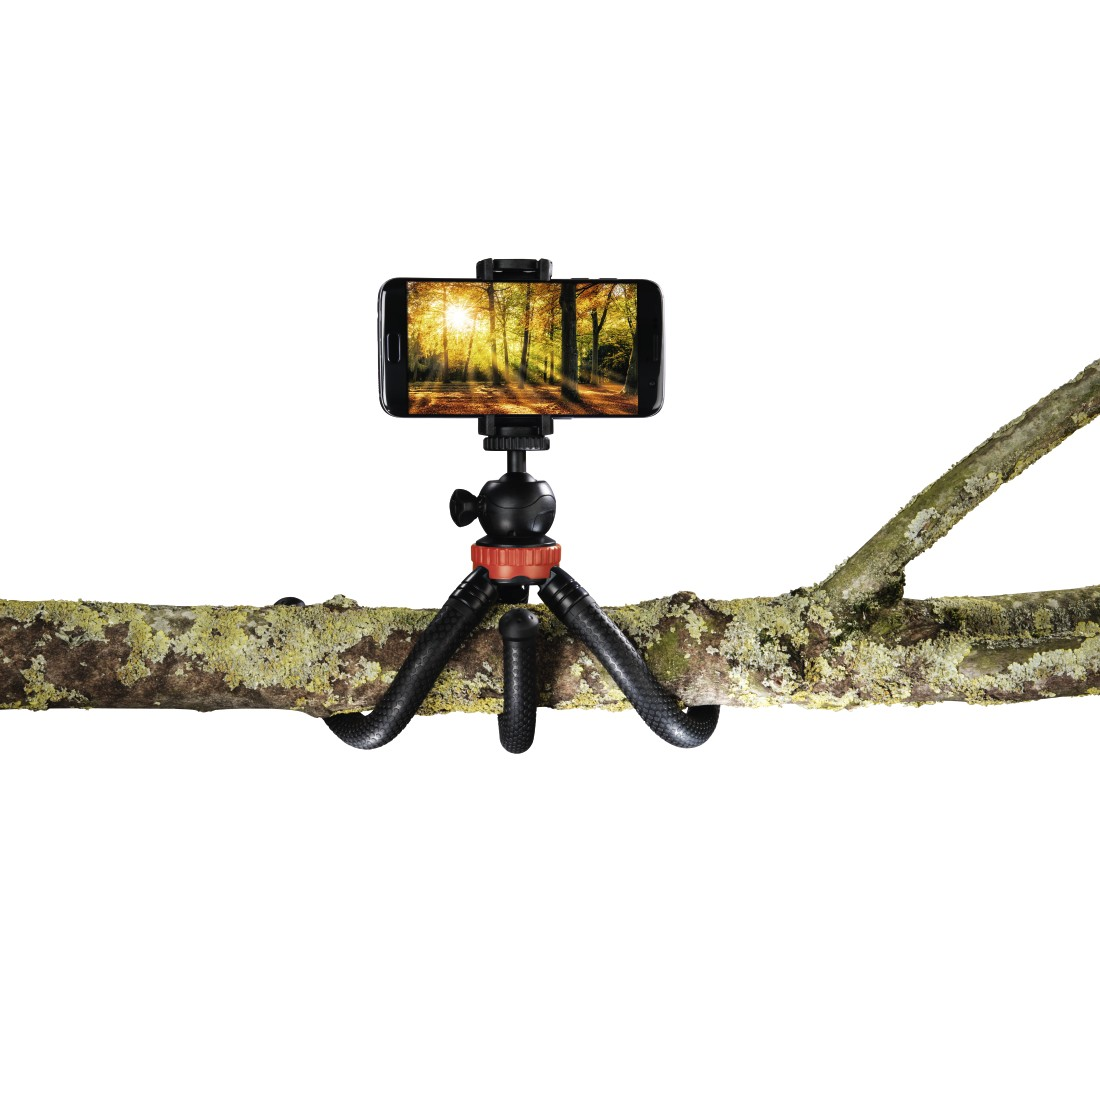 awx High-Res Appliance - Hama, FlexPro Tripod for Smartphone, GoPro and Photo Cameras, 27 cm, red